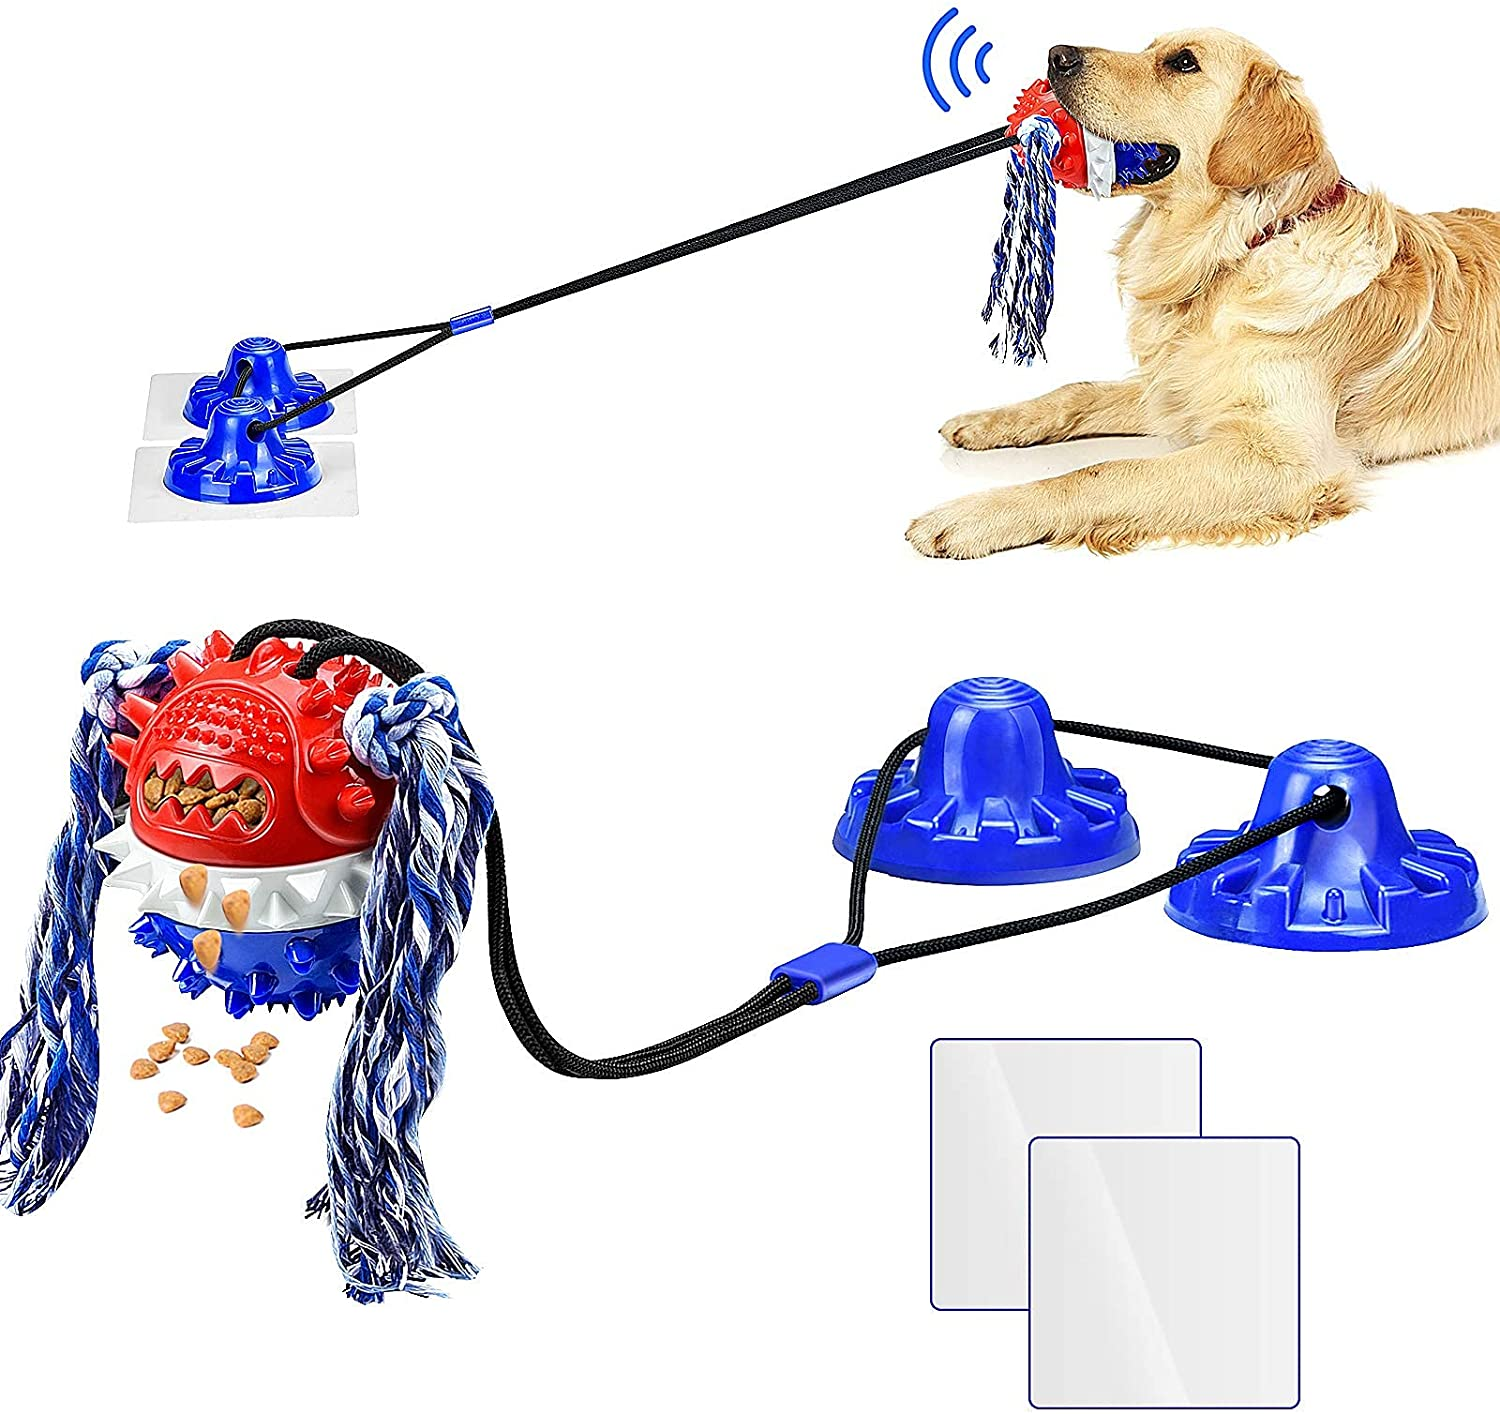 elopaw suction cup dog toy